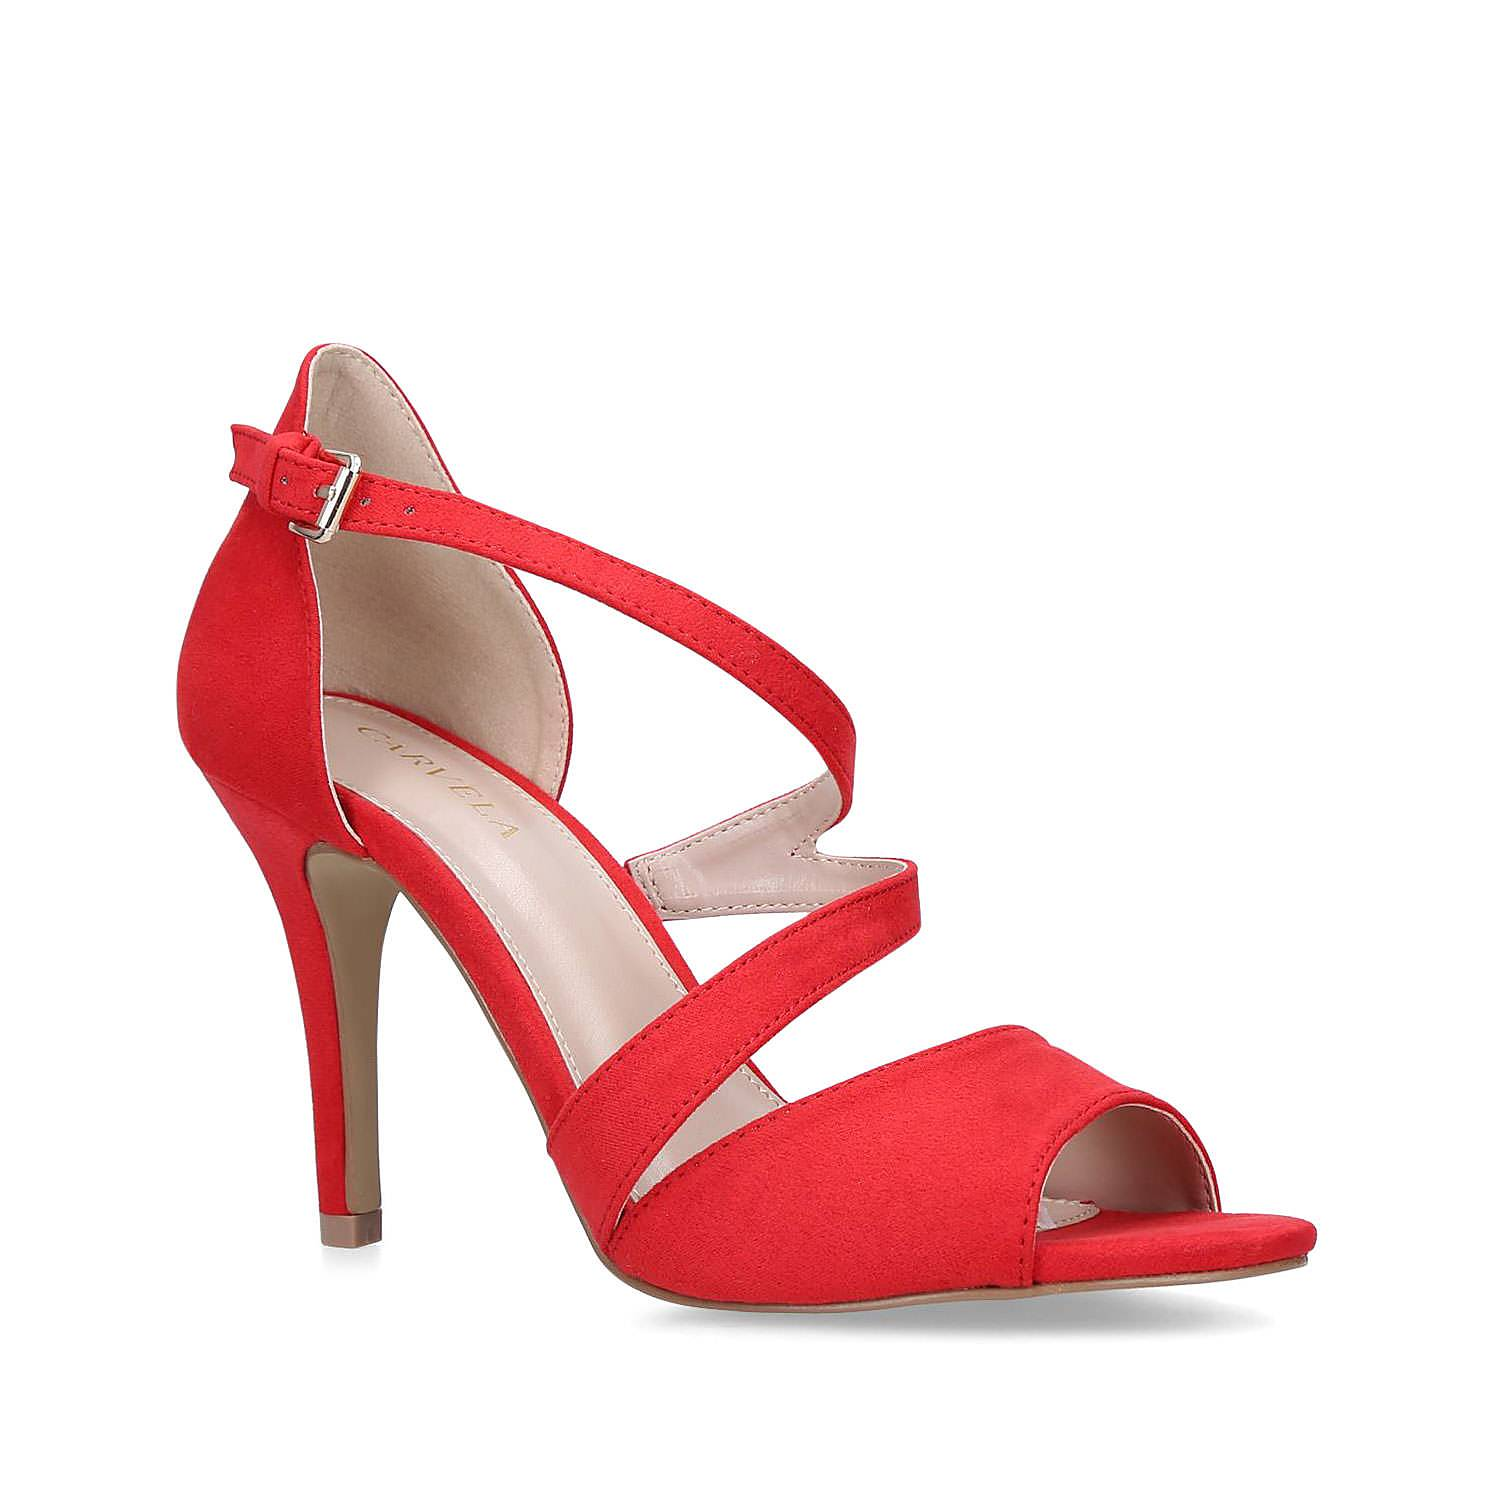 Carvela Lightning Strappy Sandals